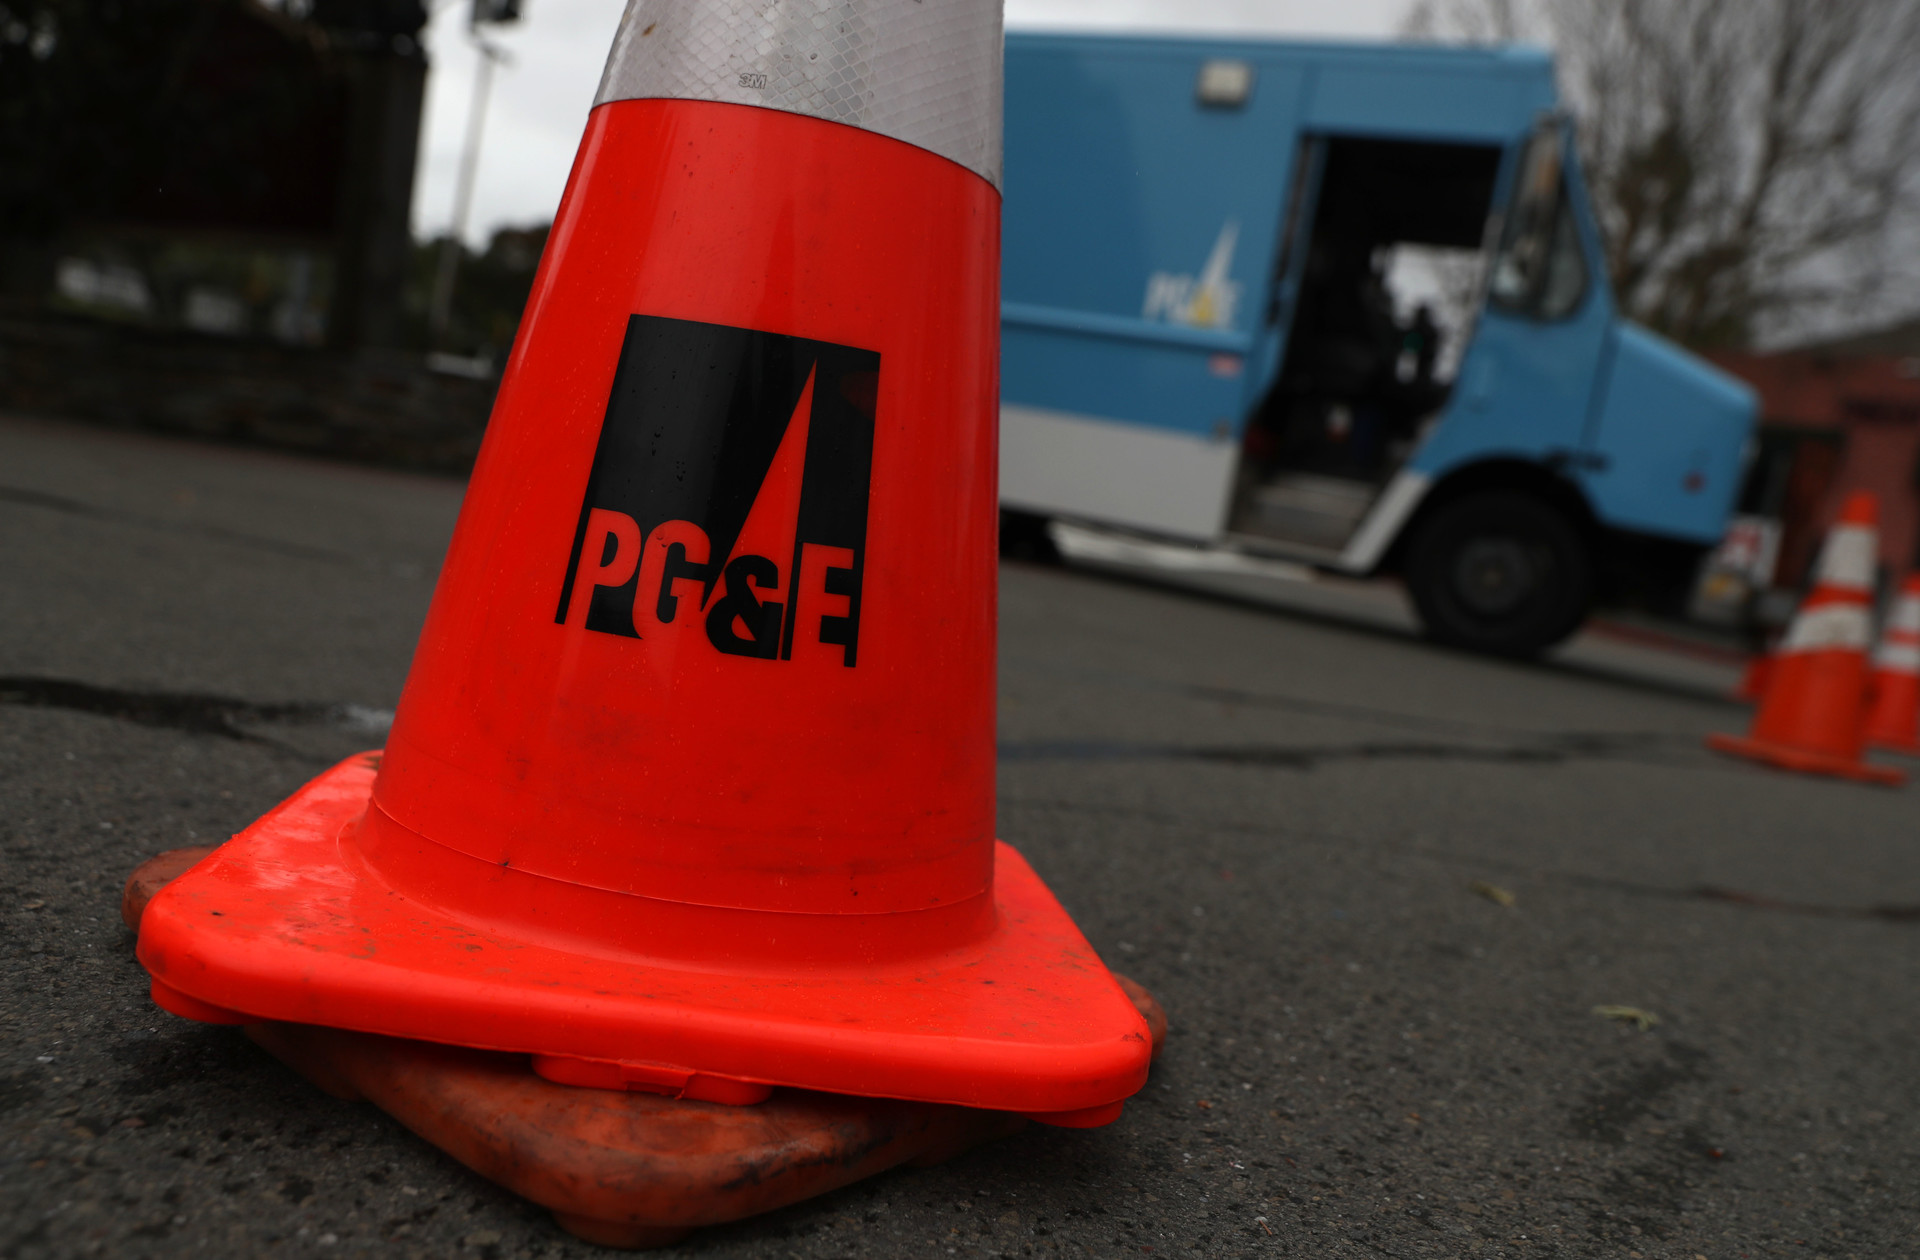 Wall Street Investors Battle Over Plan to Help PG&E Out of Bankruptcy